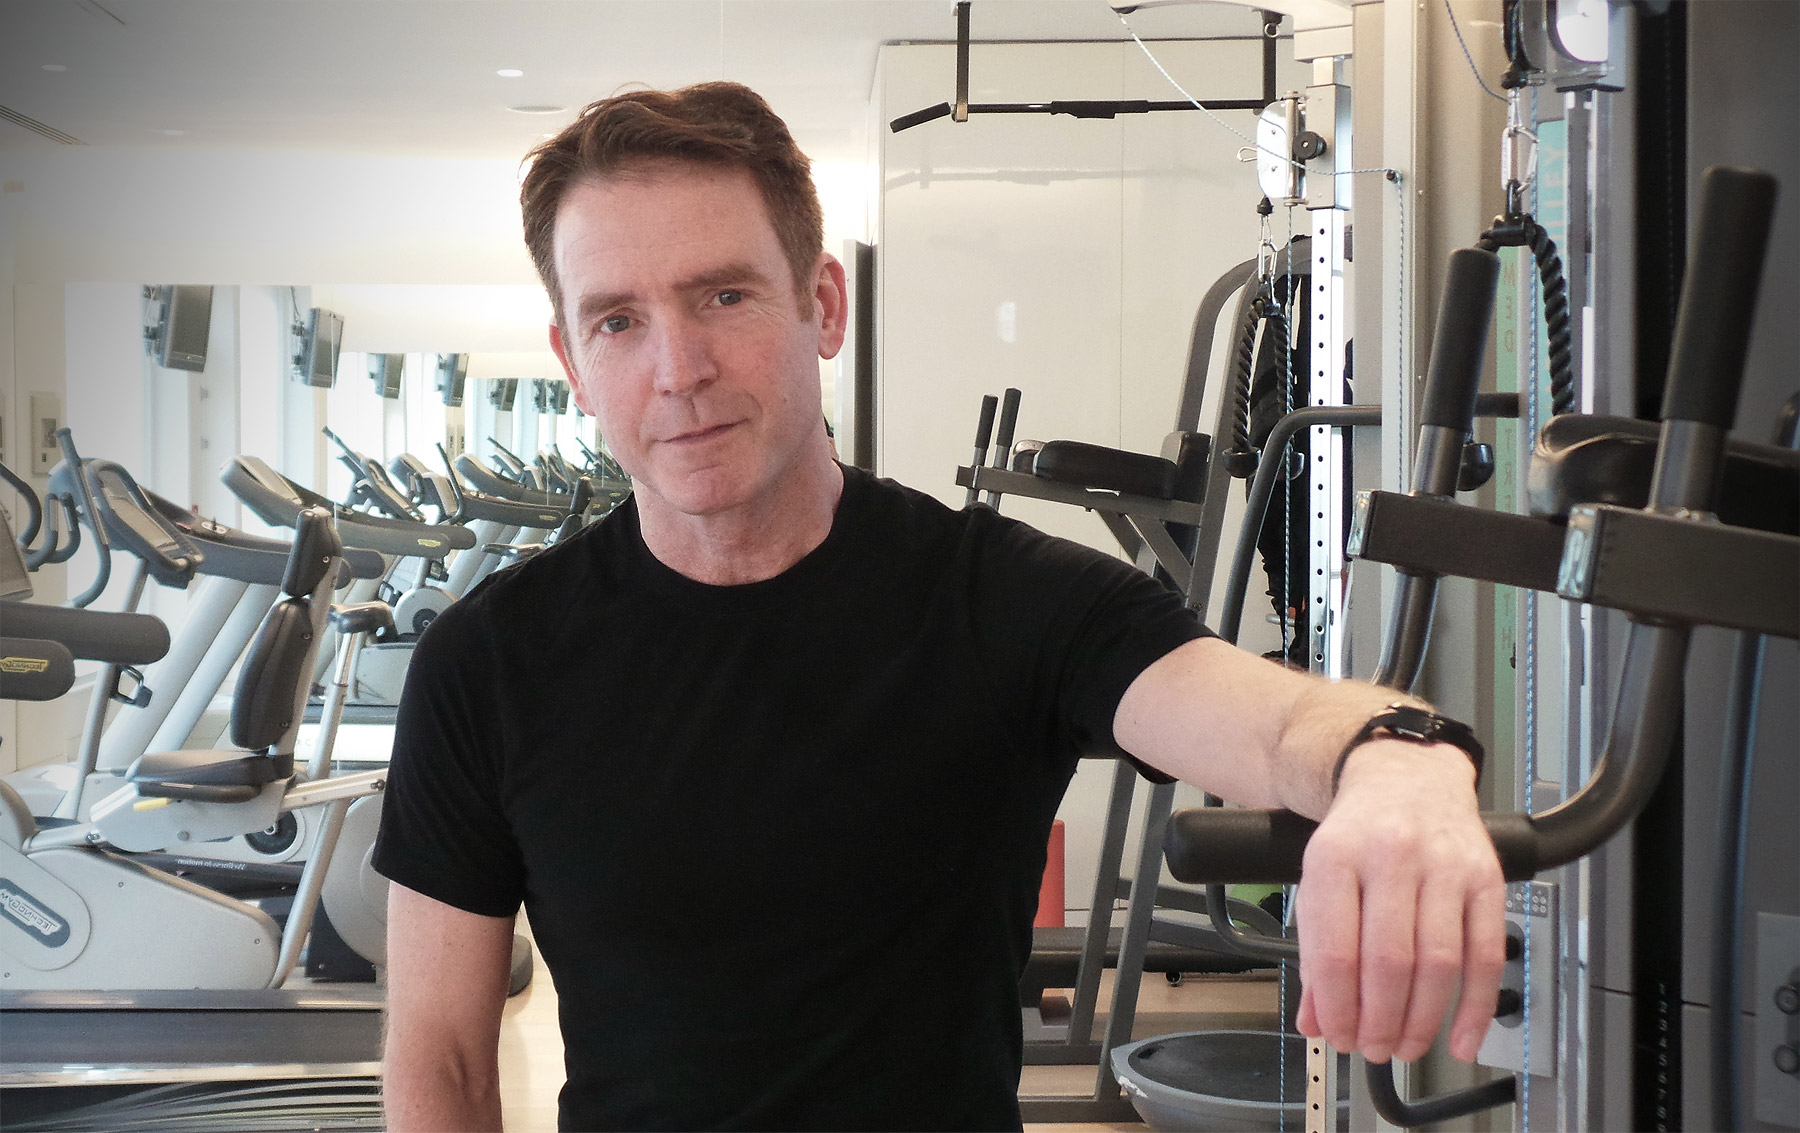 An exclusive interview with celebrity trainer Michael Garry